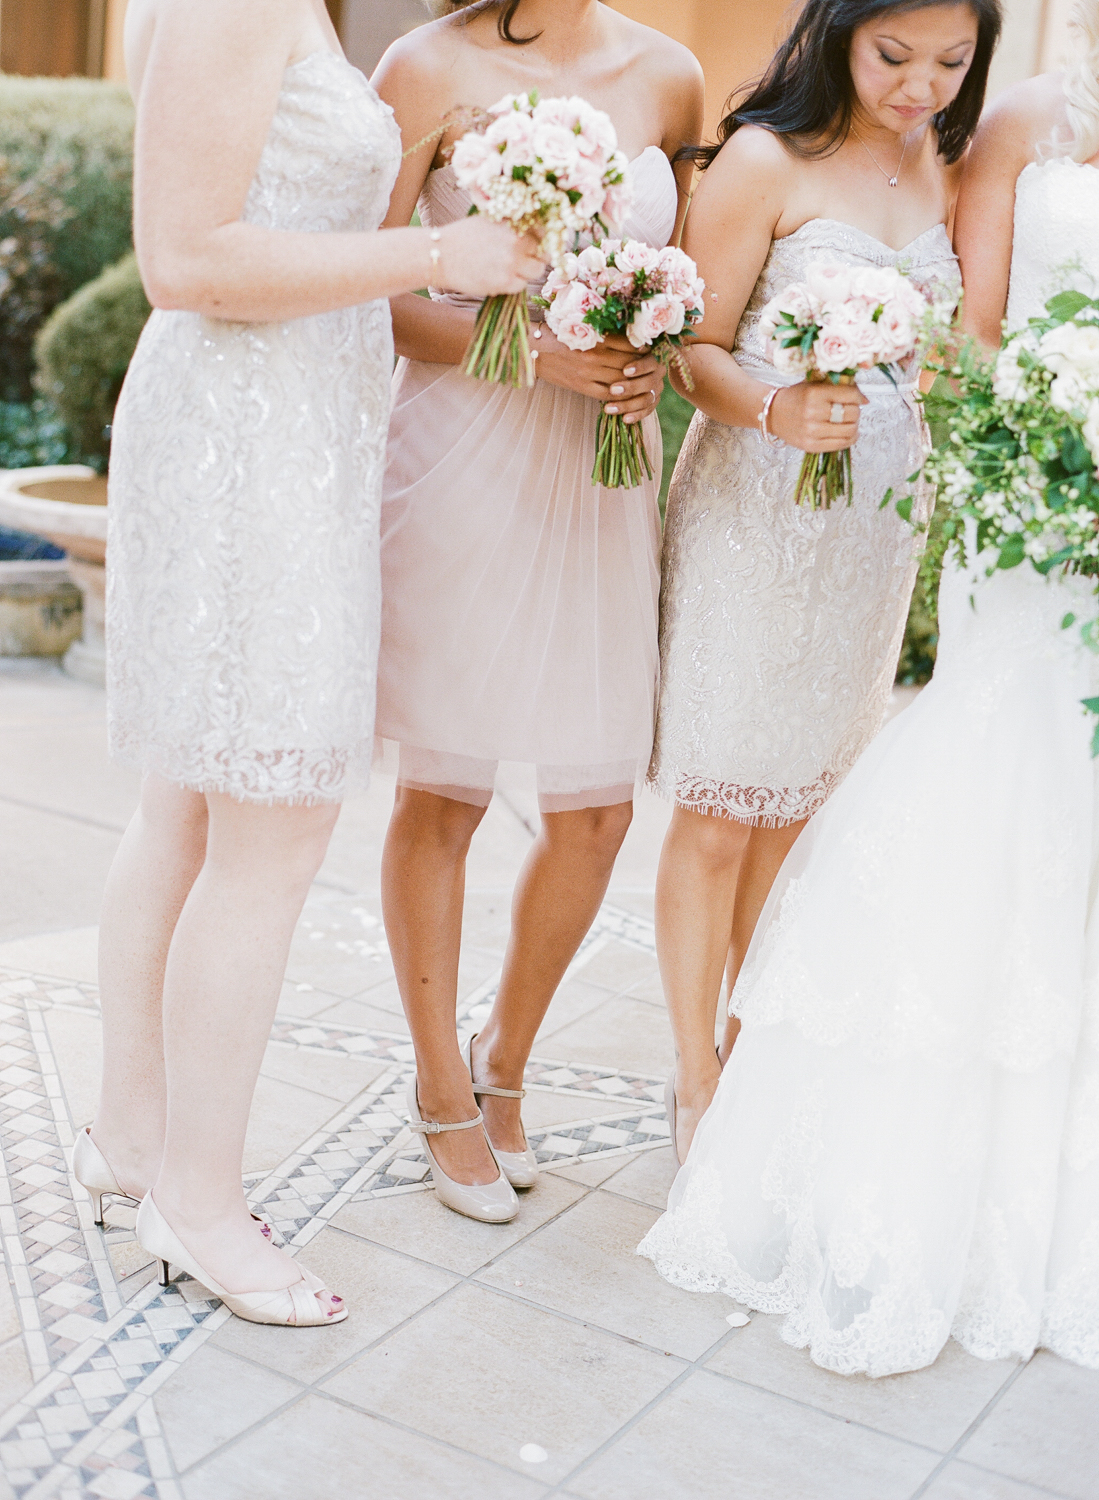 Bridesmaids in varied by related dresses of chiffon and lace cream and blush; photo by Sylvie Gil